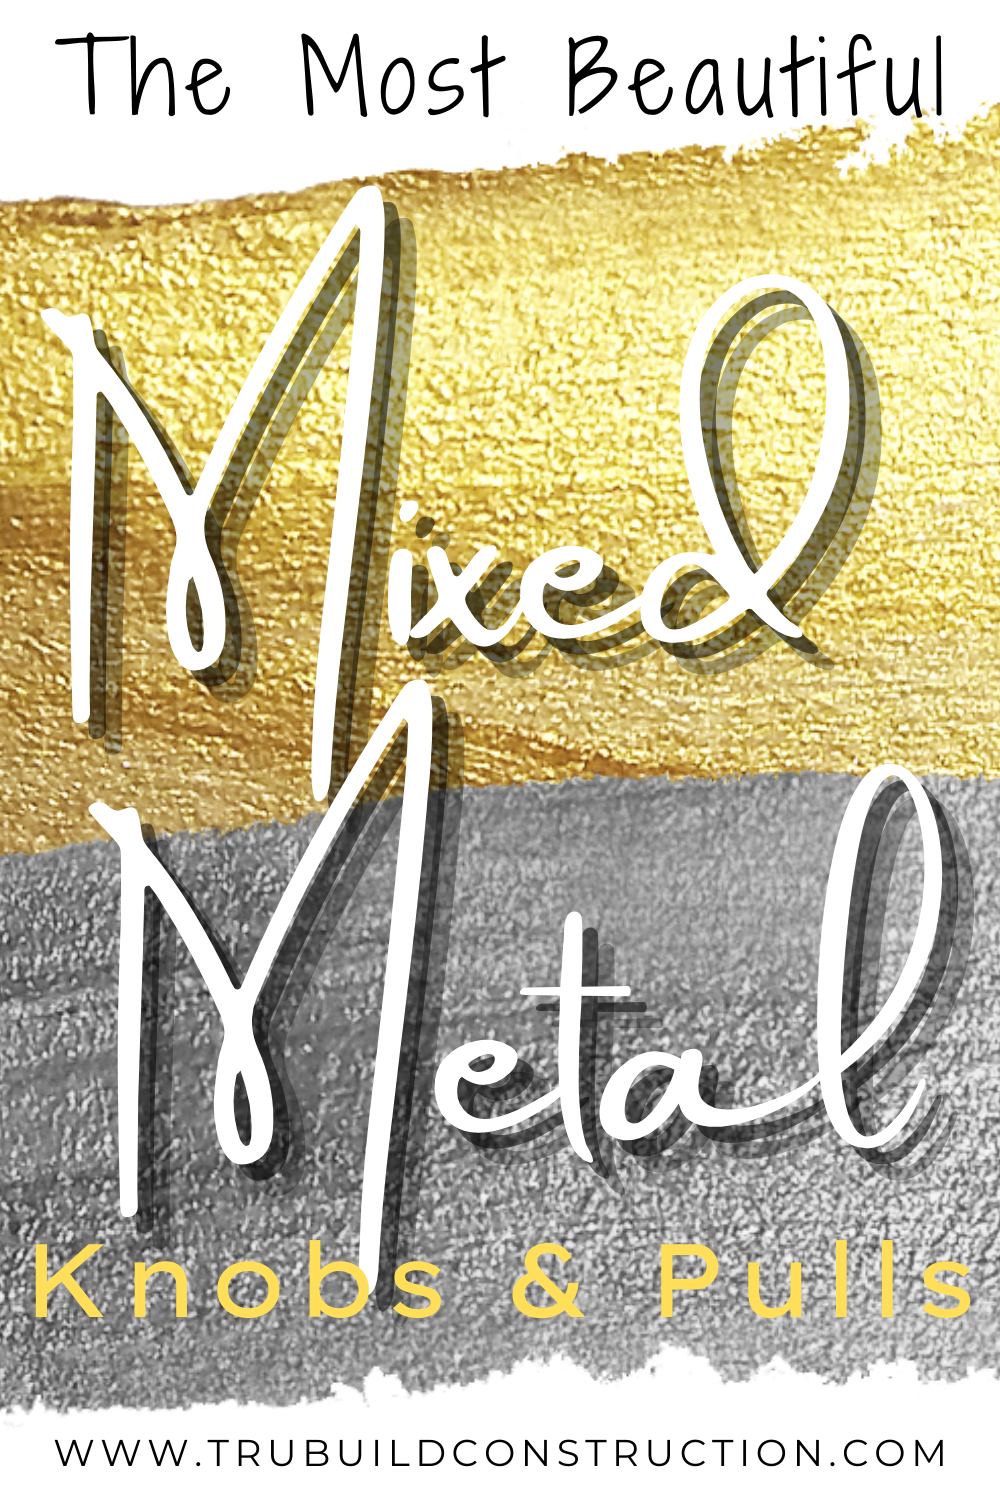 My List Of The Most Beautiful Mixed Metal Cabinet Knobs And Pulls Trubuild Construction